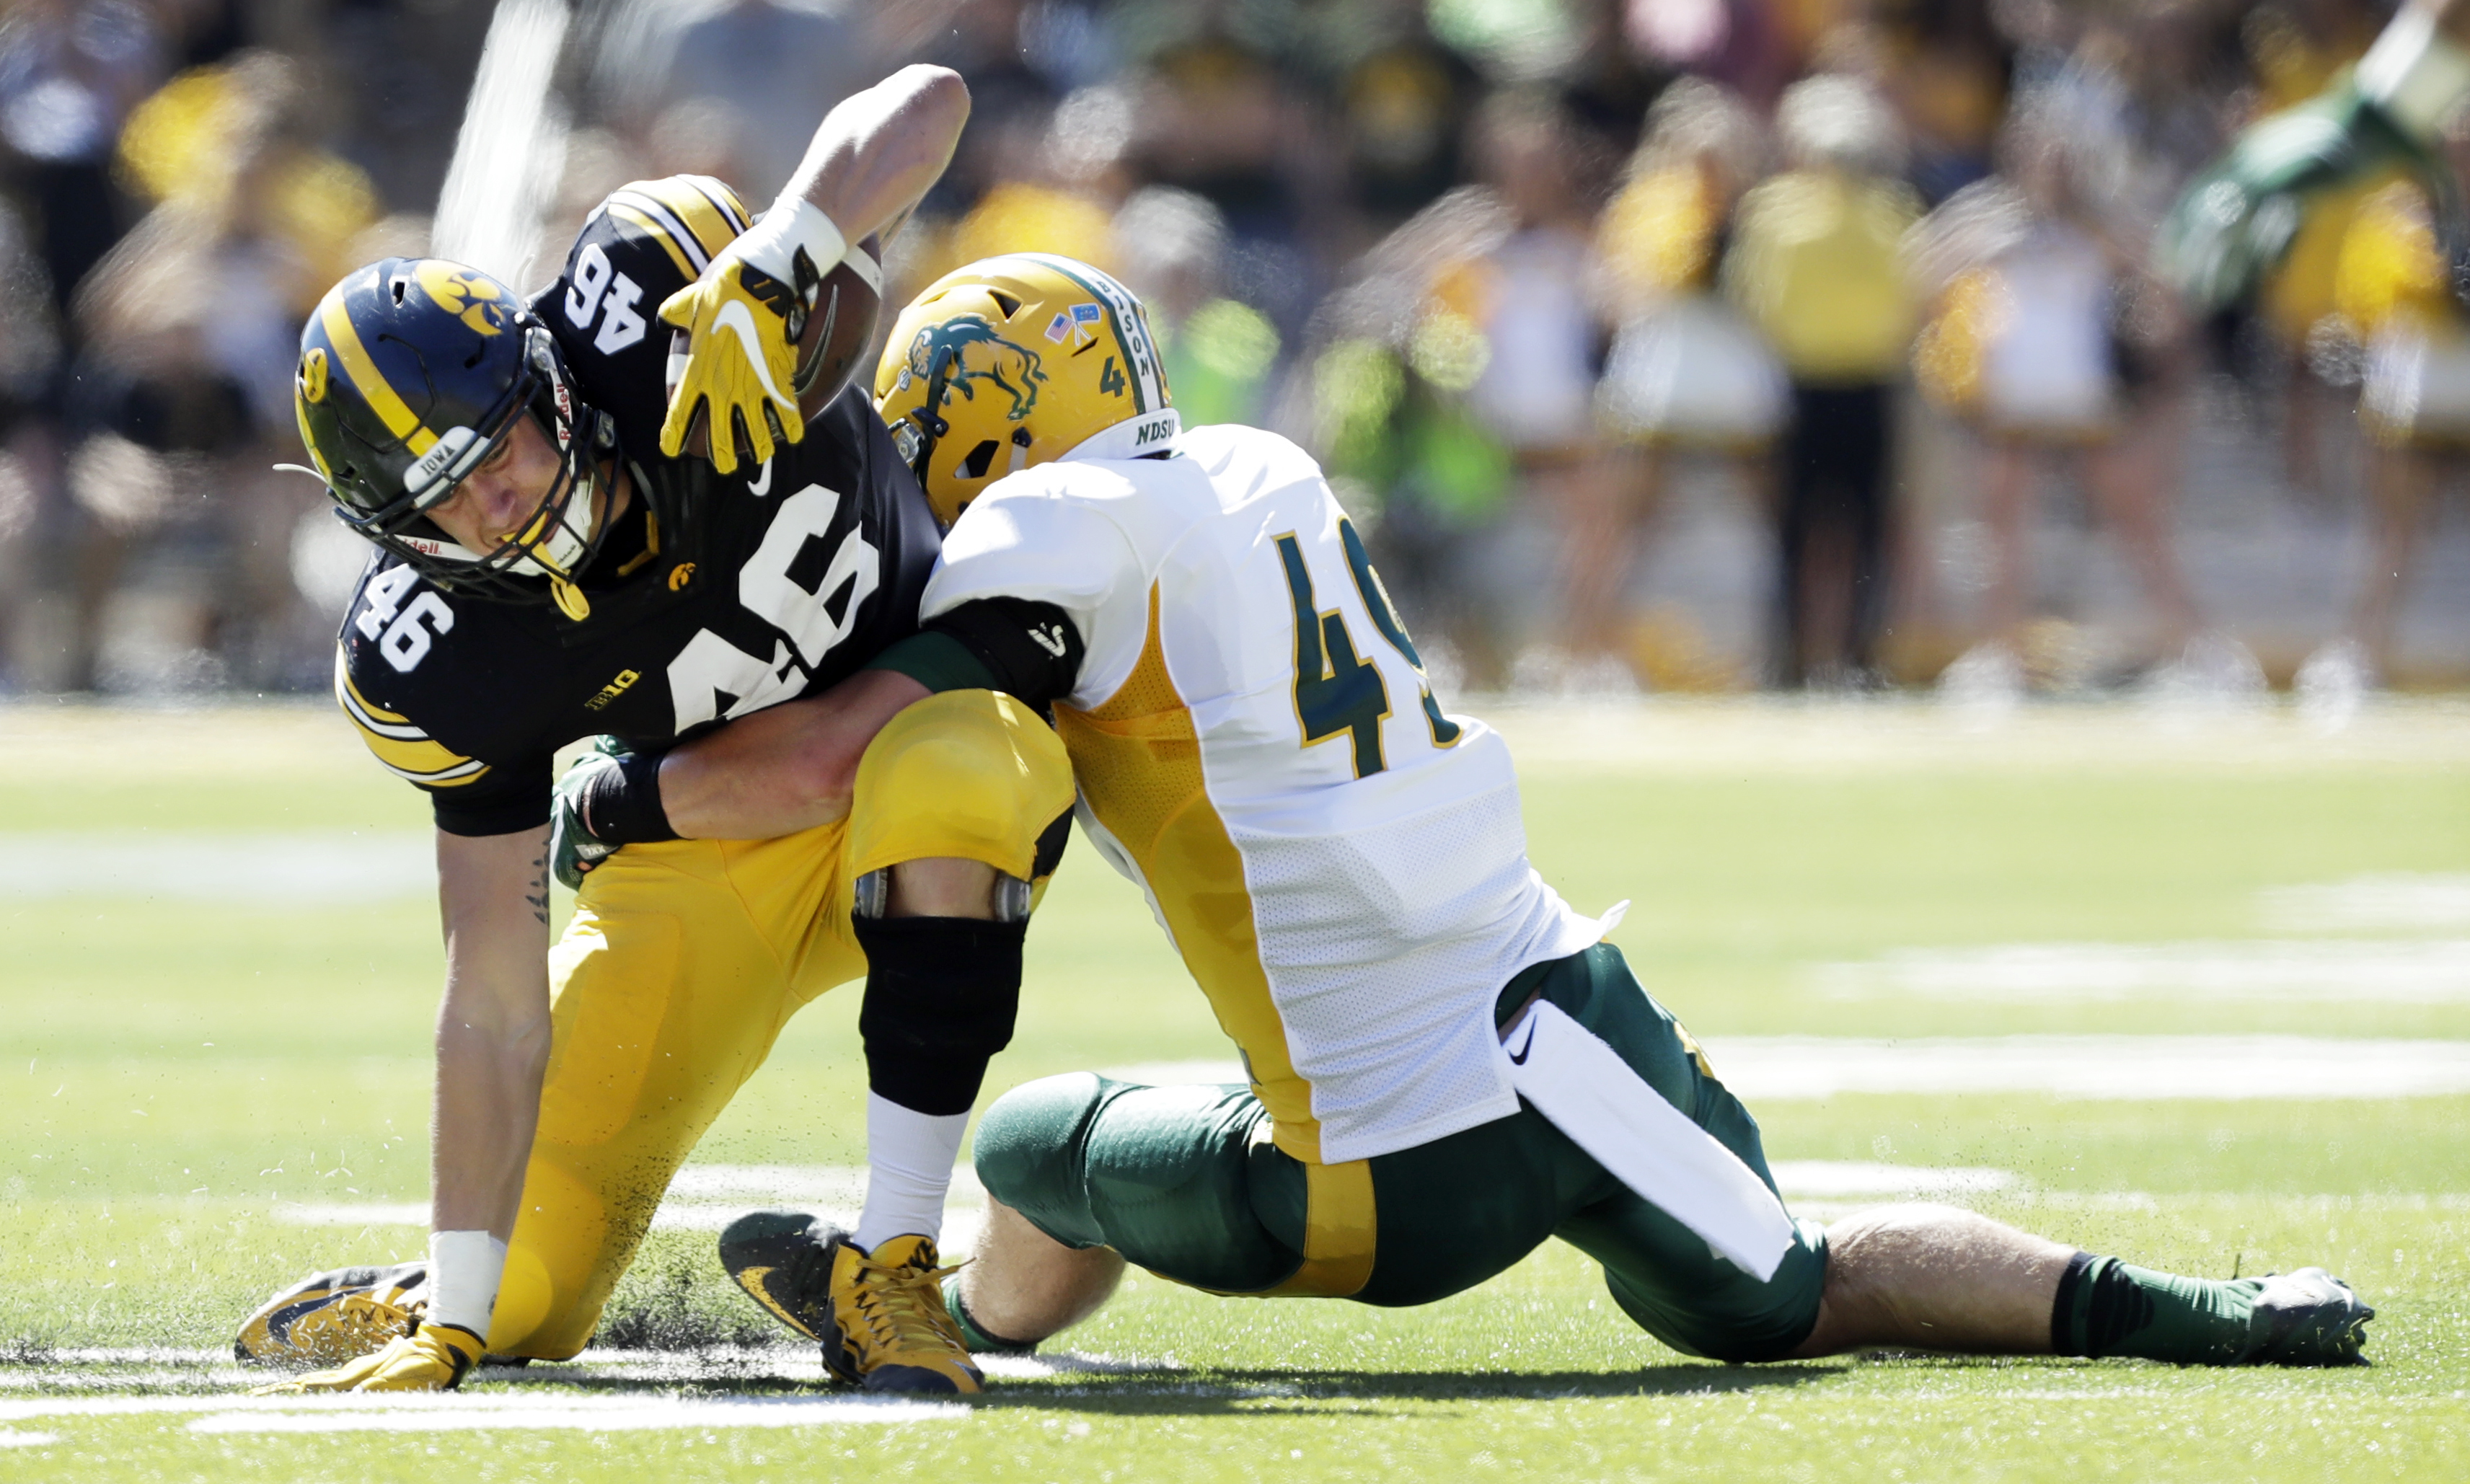 Iowa tight end George Kittle (46) is tackled by North Dakota State linebacker Nick DeLuca, right, after making a reception during the first half of an NCAA college football game, Saturday, Sept. 17, 2016, in Iowa City, Iowa. North Dakota State won 23-21.